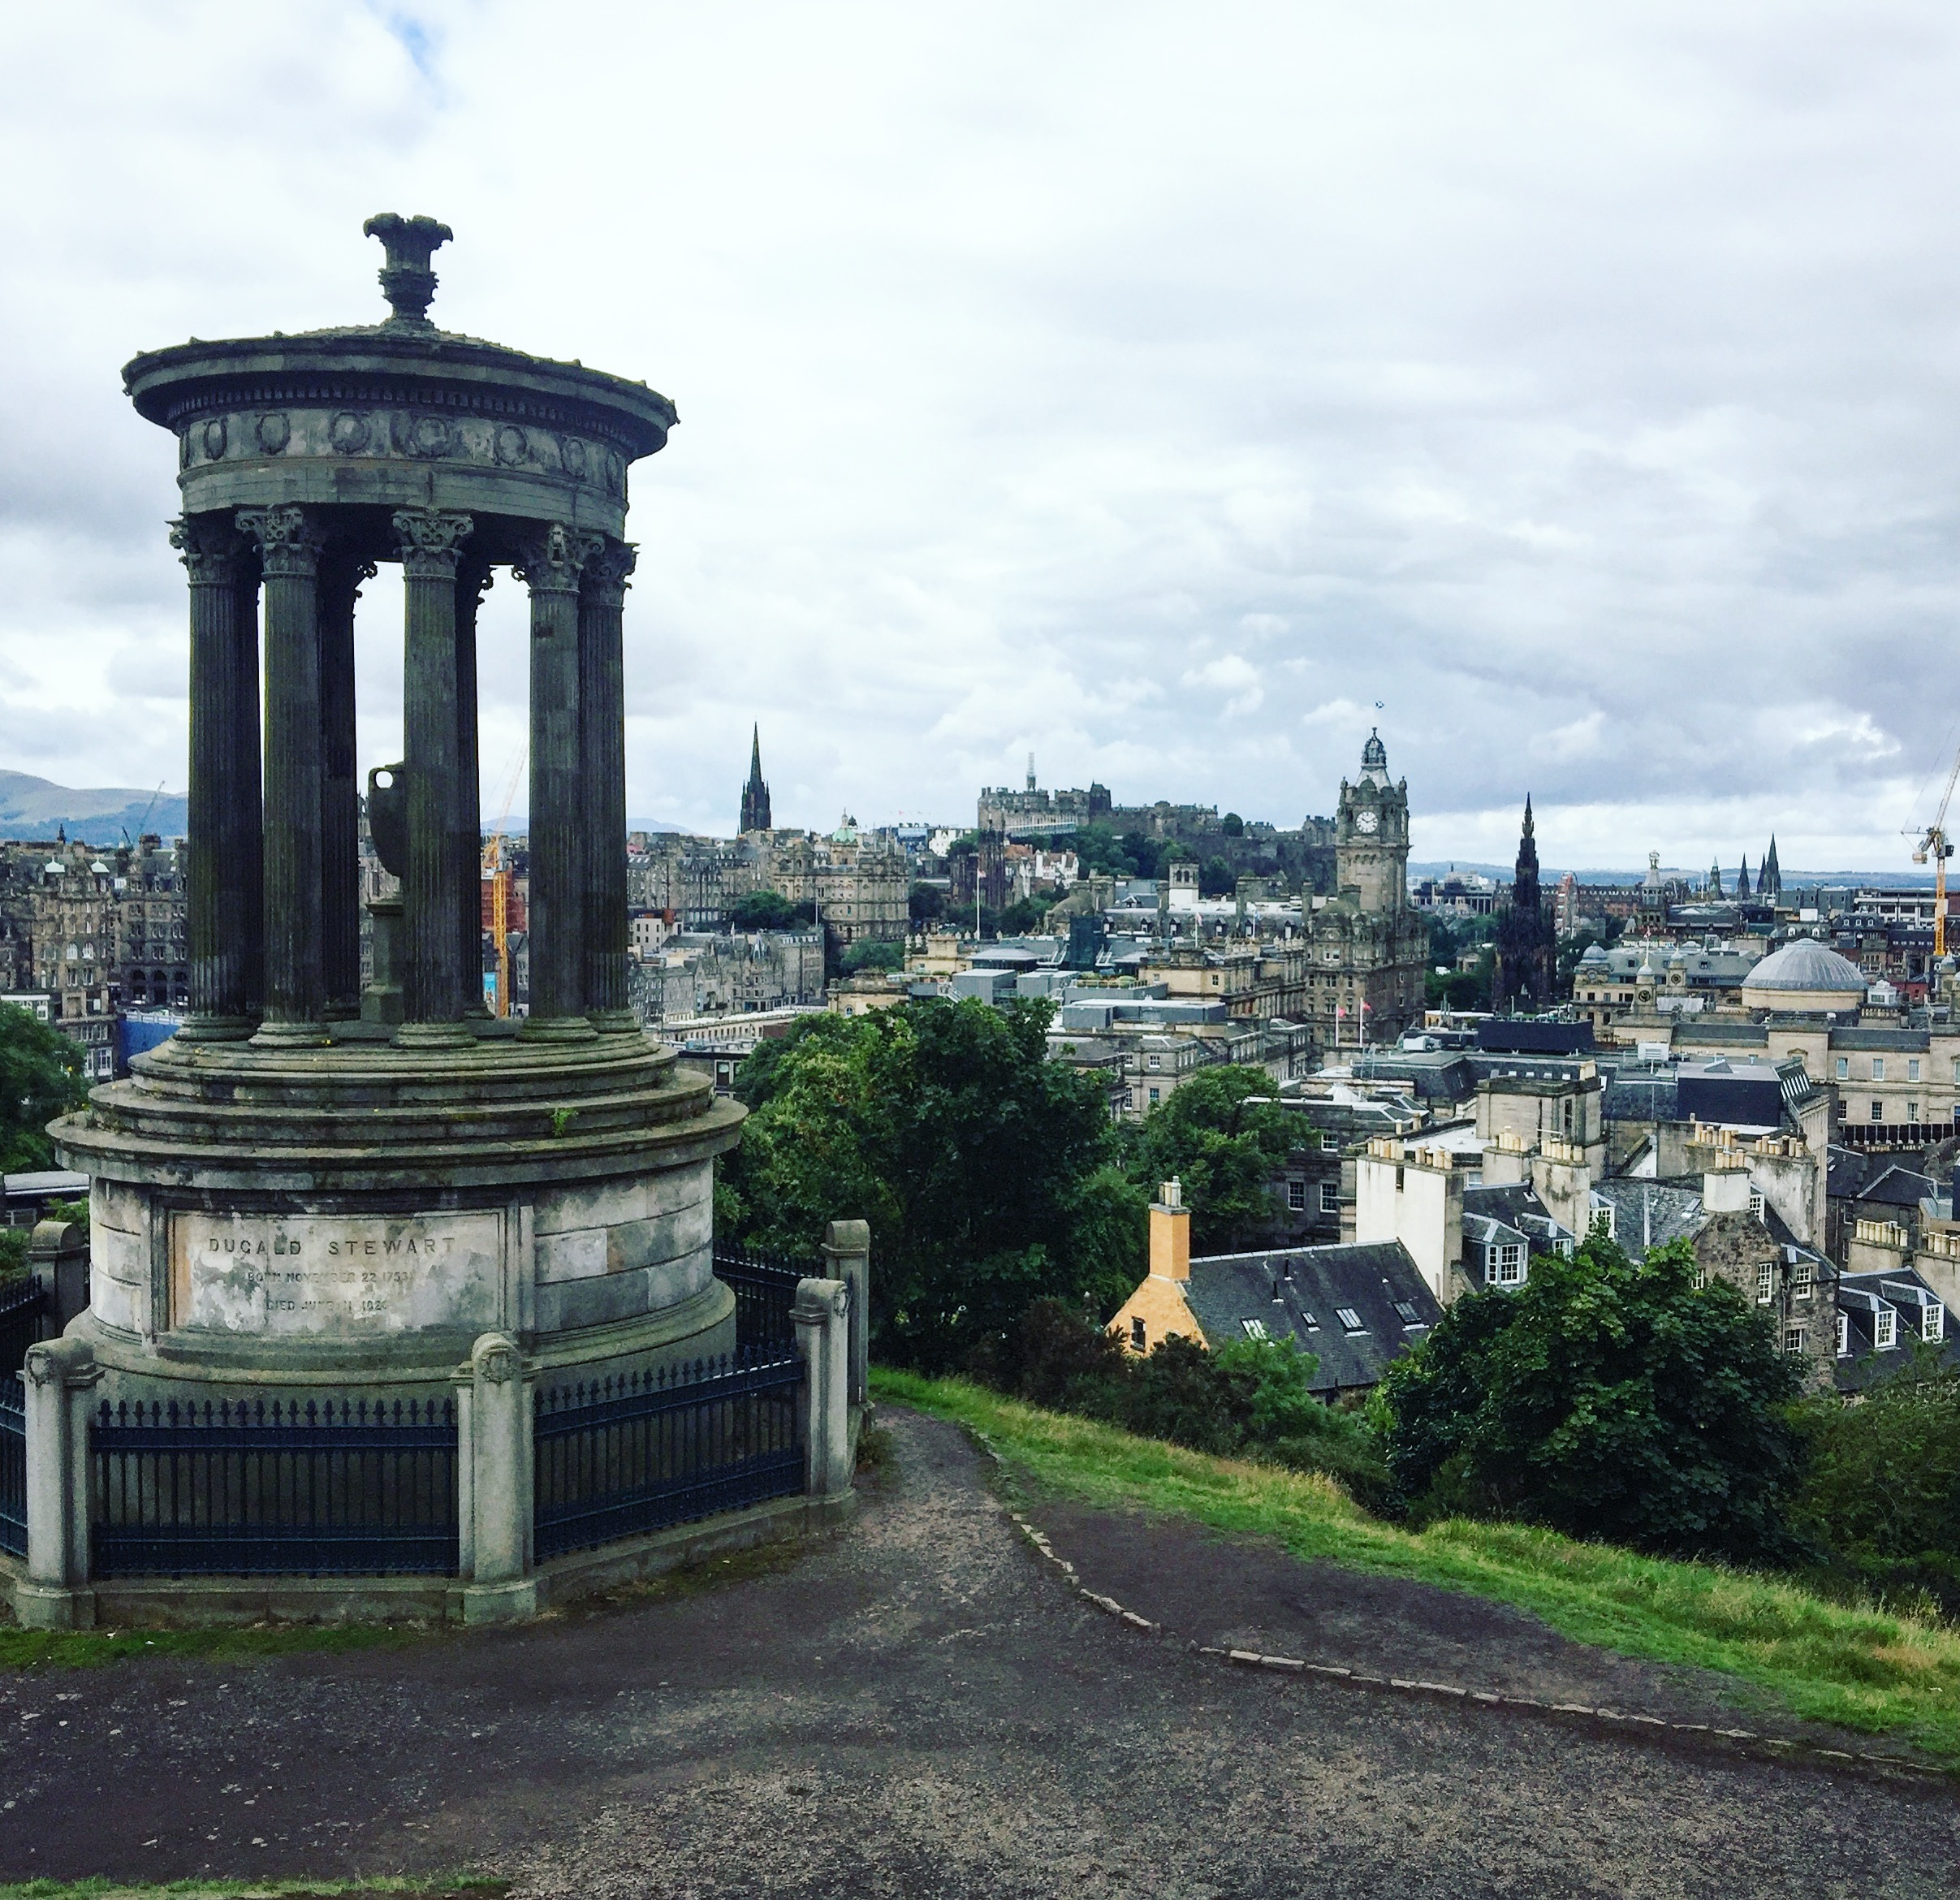 Calton Hill: Amazing views over the New Town, Arthur's Seat and The Firth of Forth